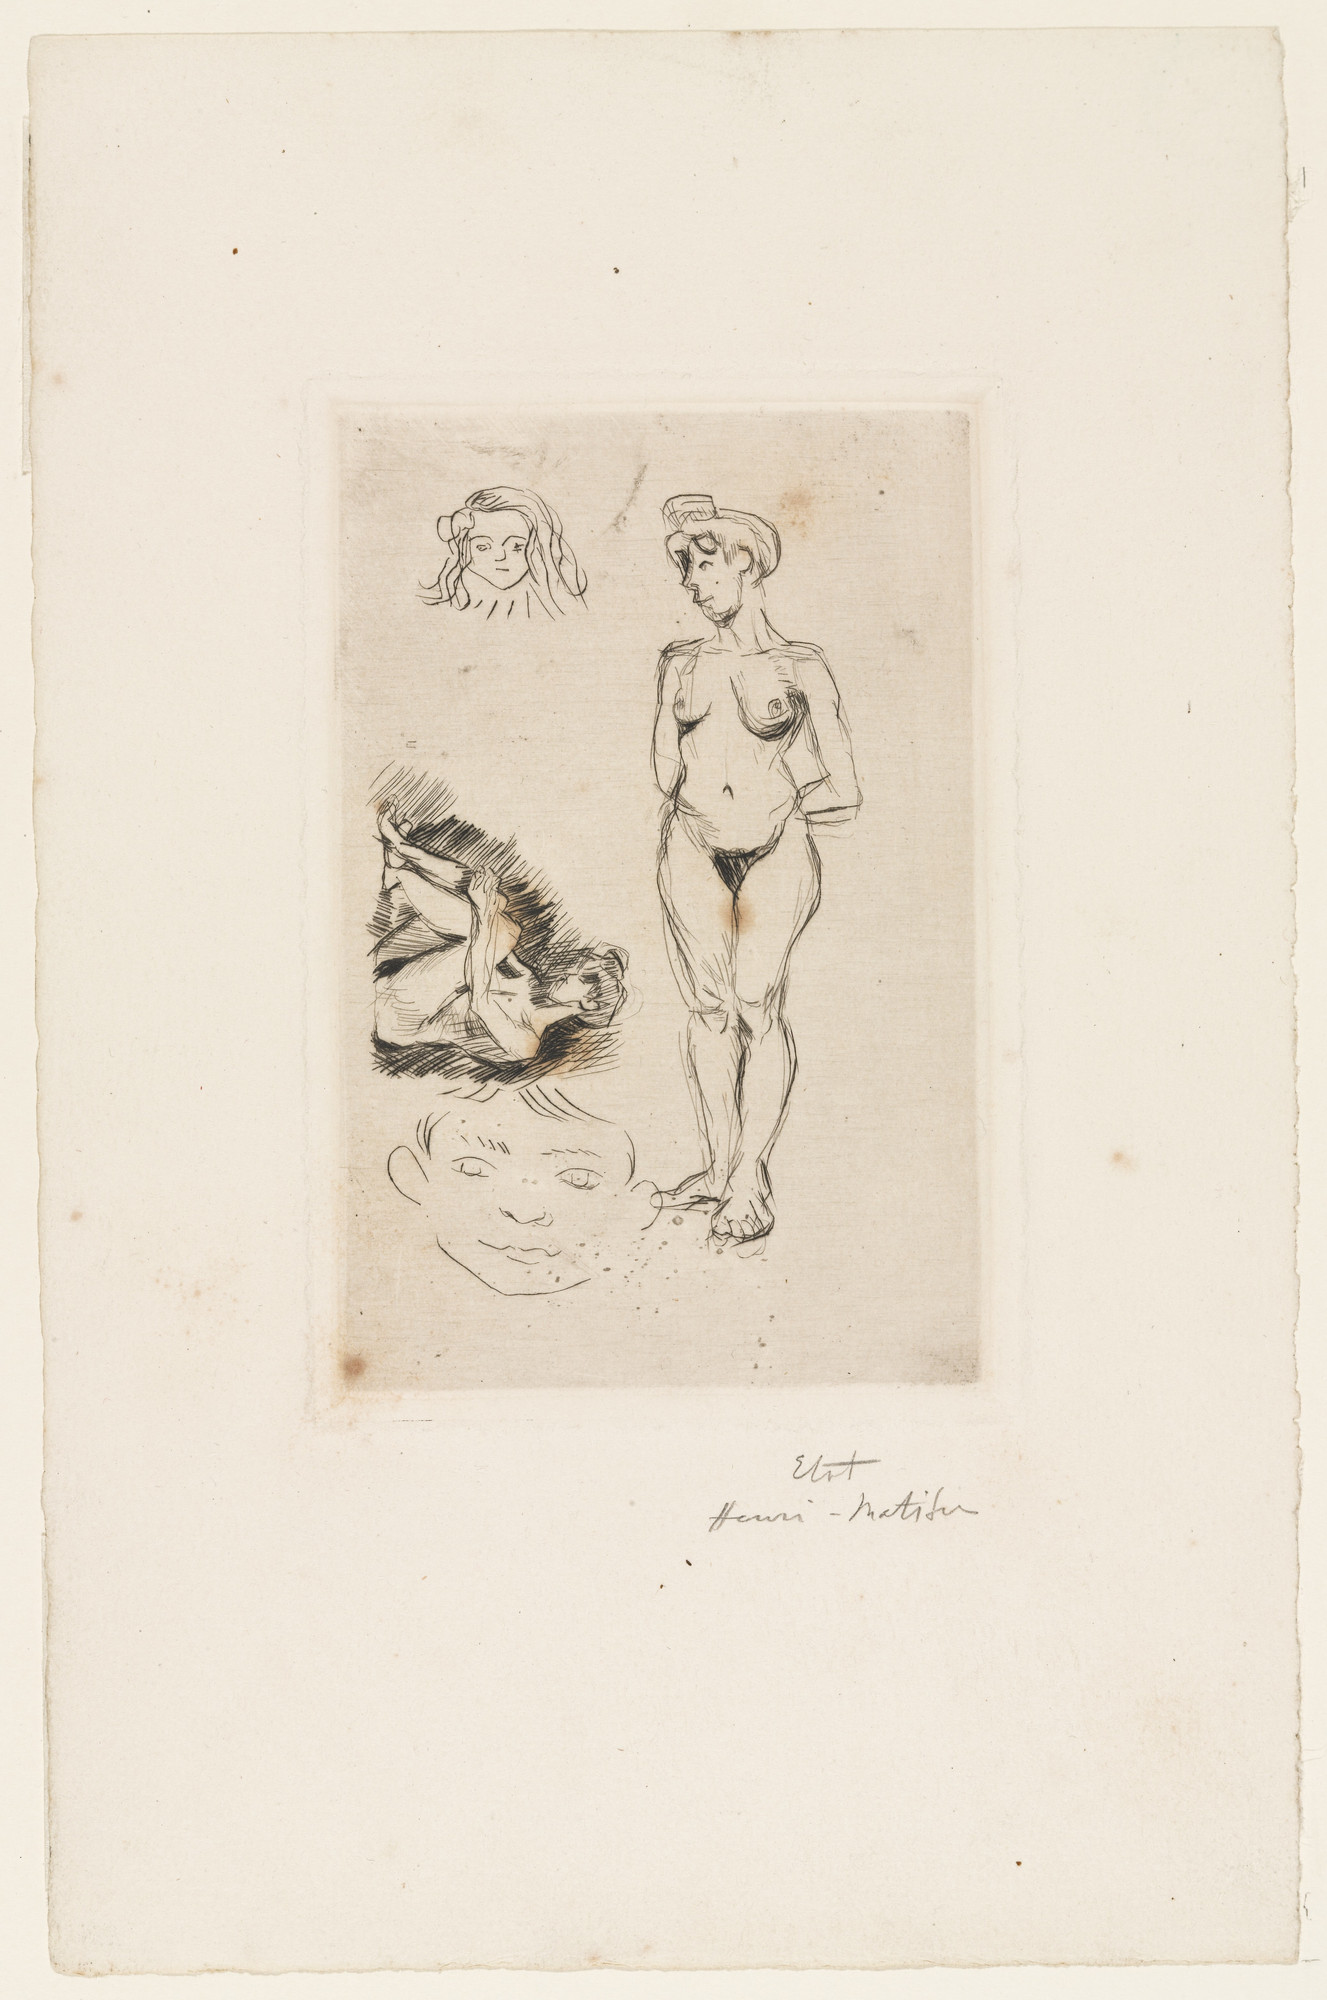 Henri Matisse. Two Nudes, Two Heads of Children (Deux nus, deux têtes d'enfants). 1900–03